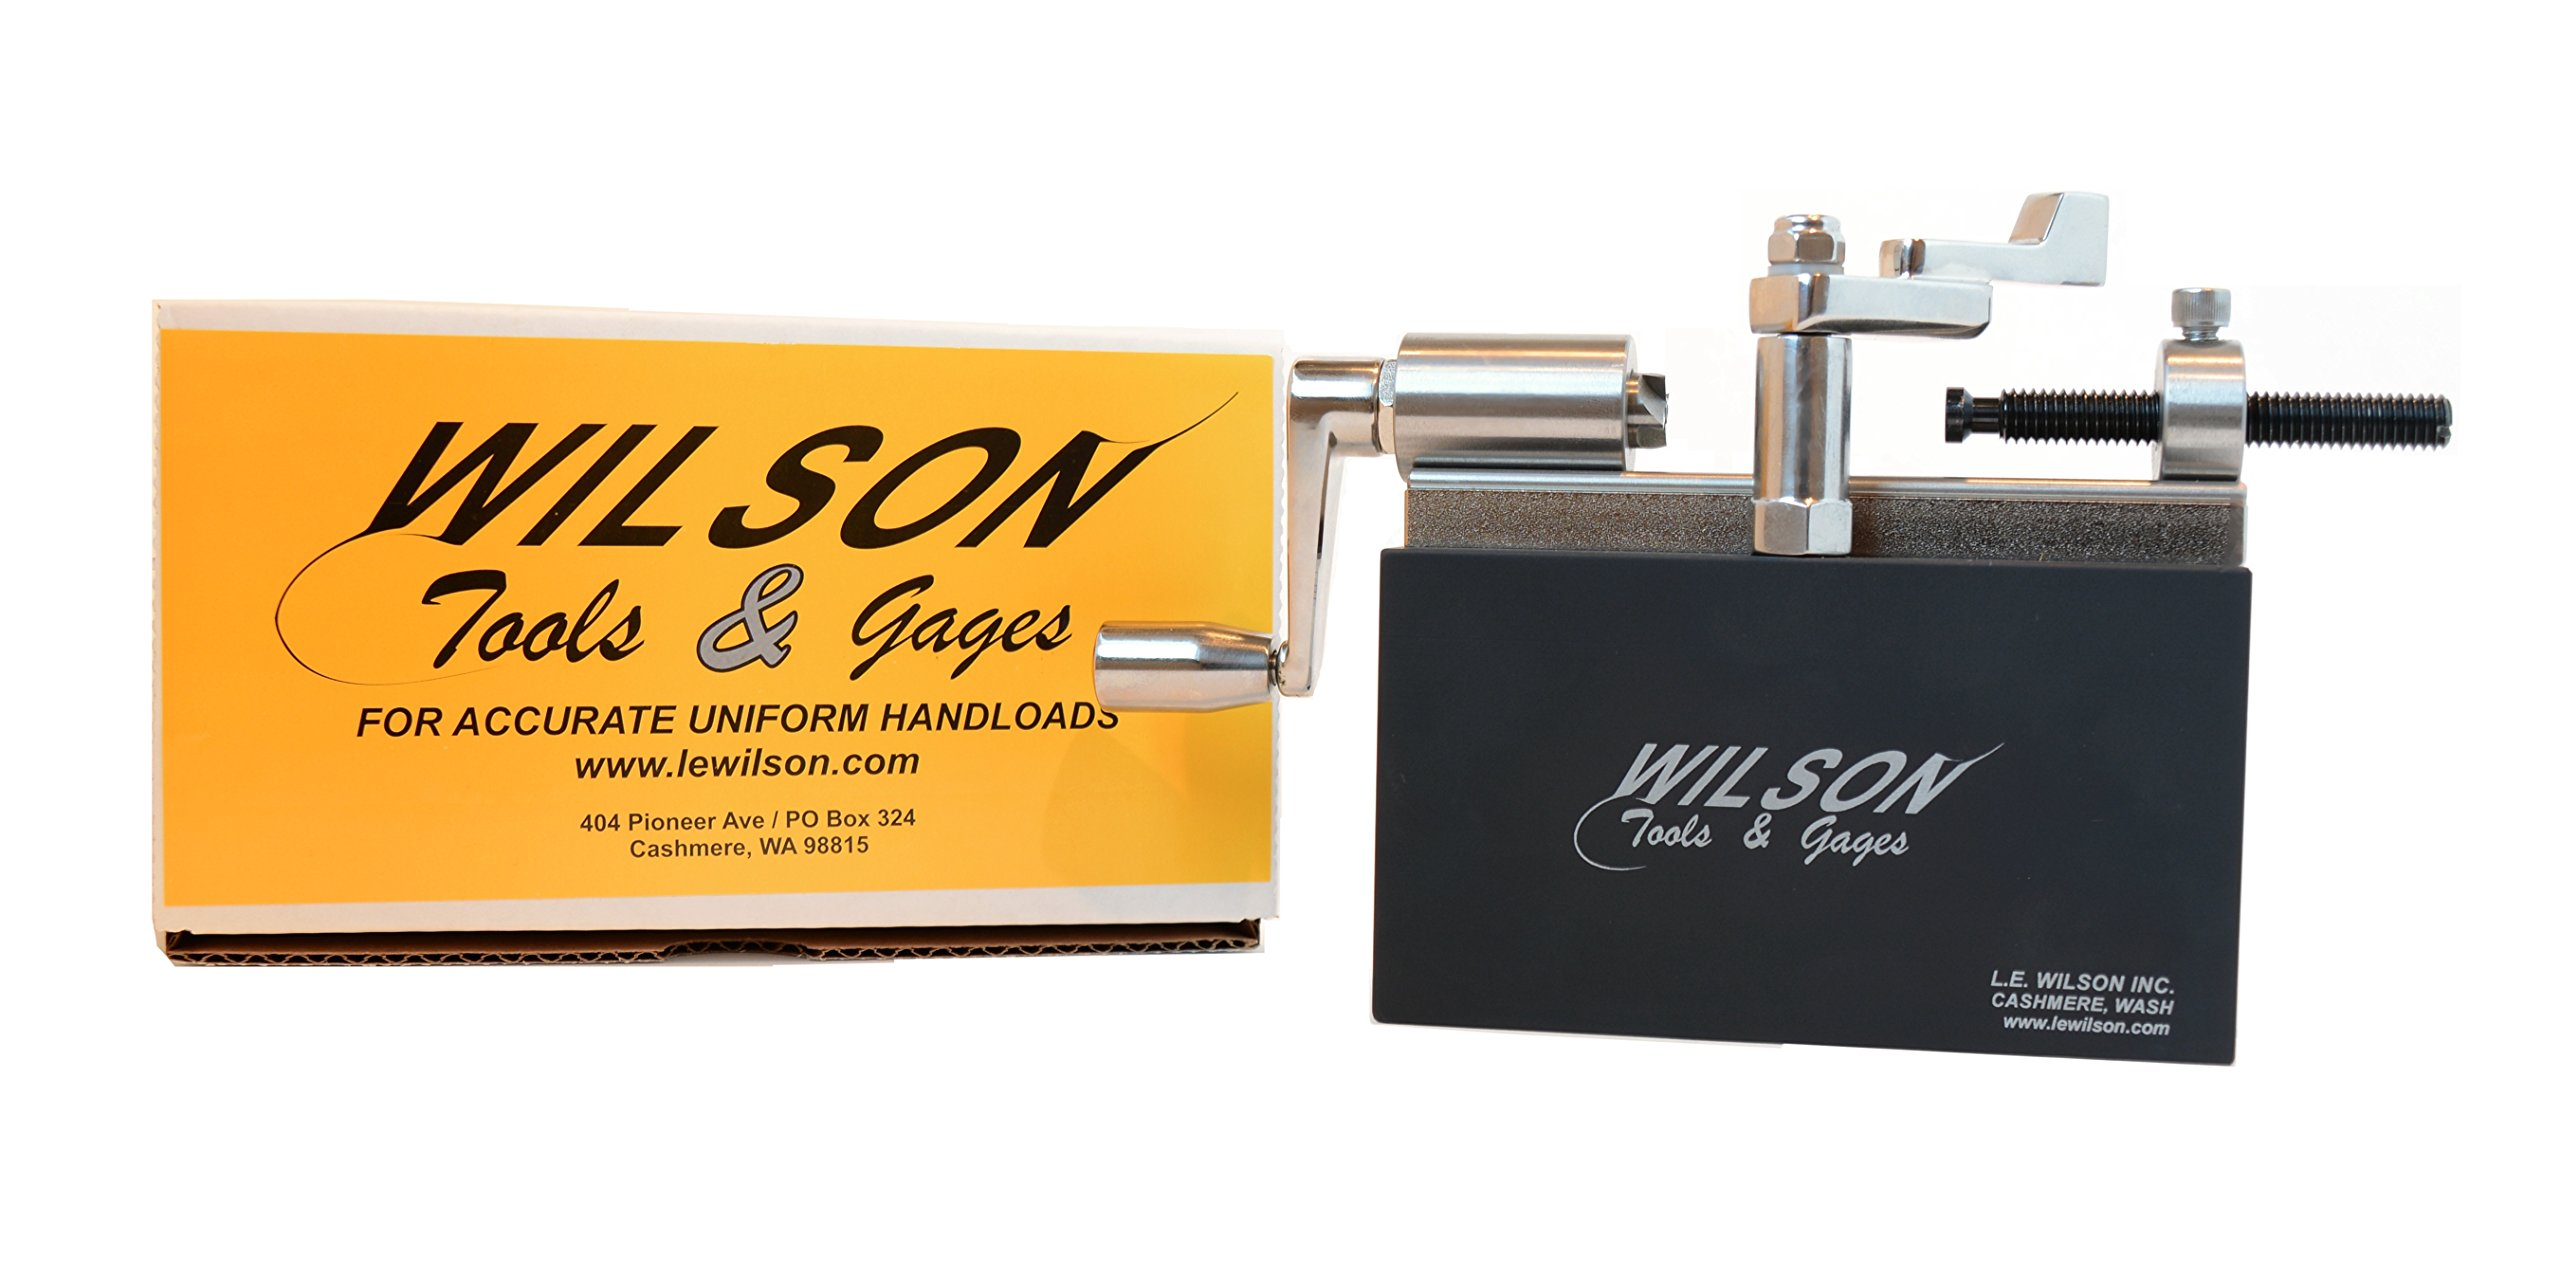 L.E. Wilson CTS-17KITU Case Trimmer Kit Stainless Steel 17 Caliber, Stand & Clamp Included, Stainless Steel/Black Oxide/Electro Plated